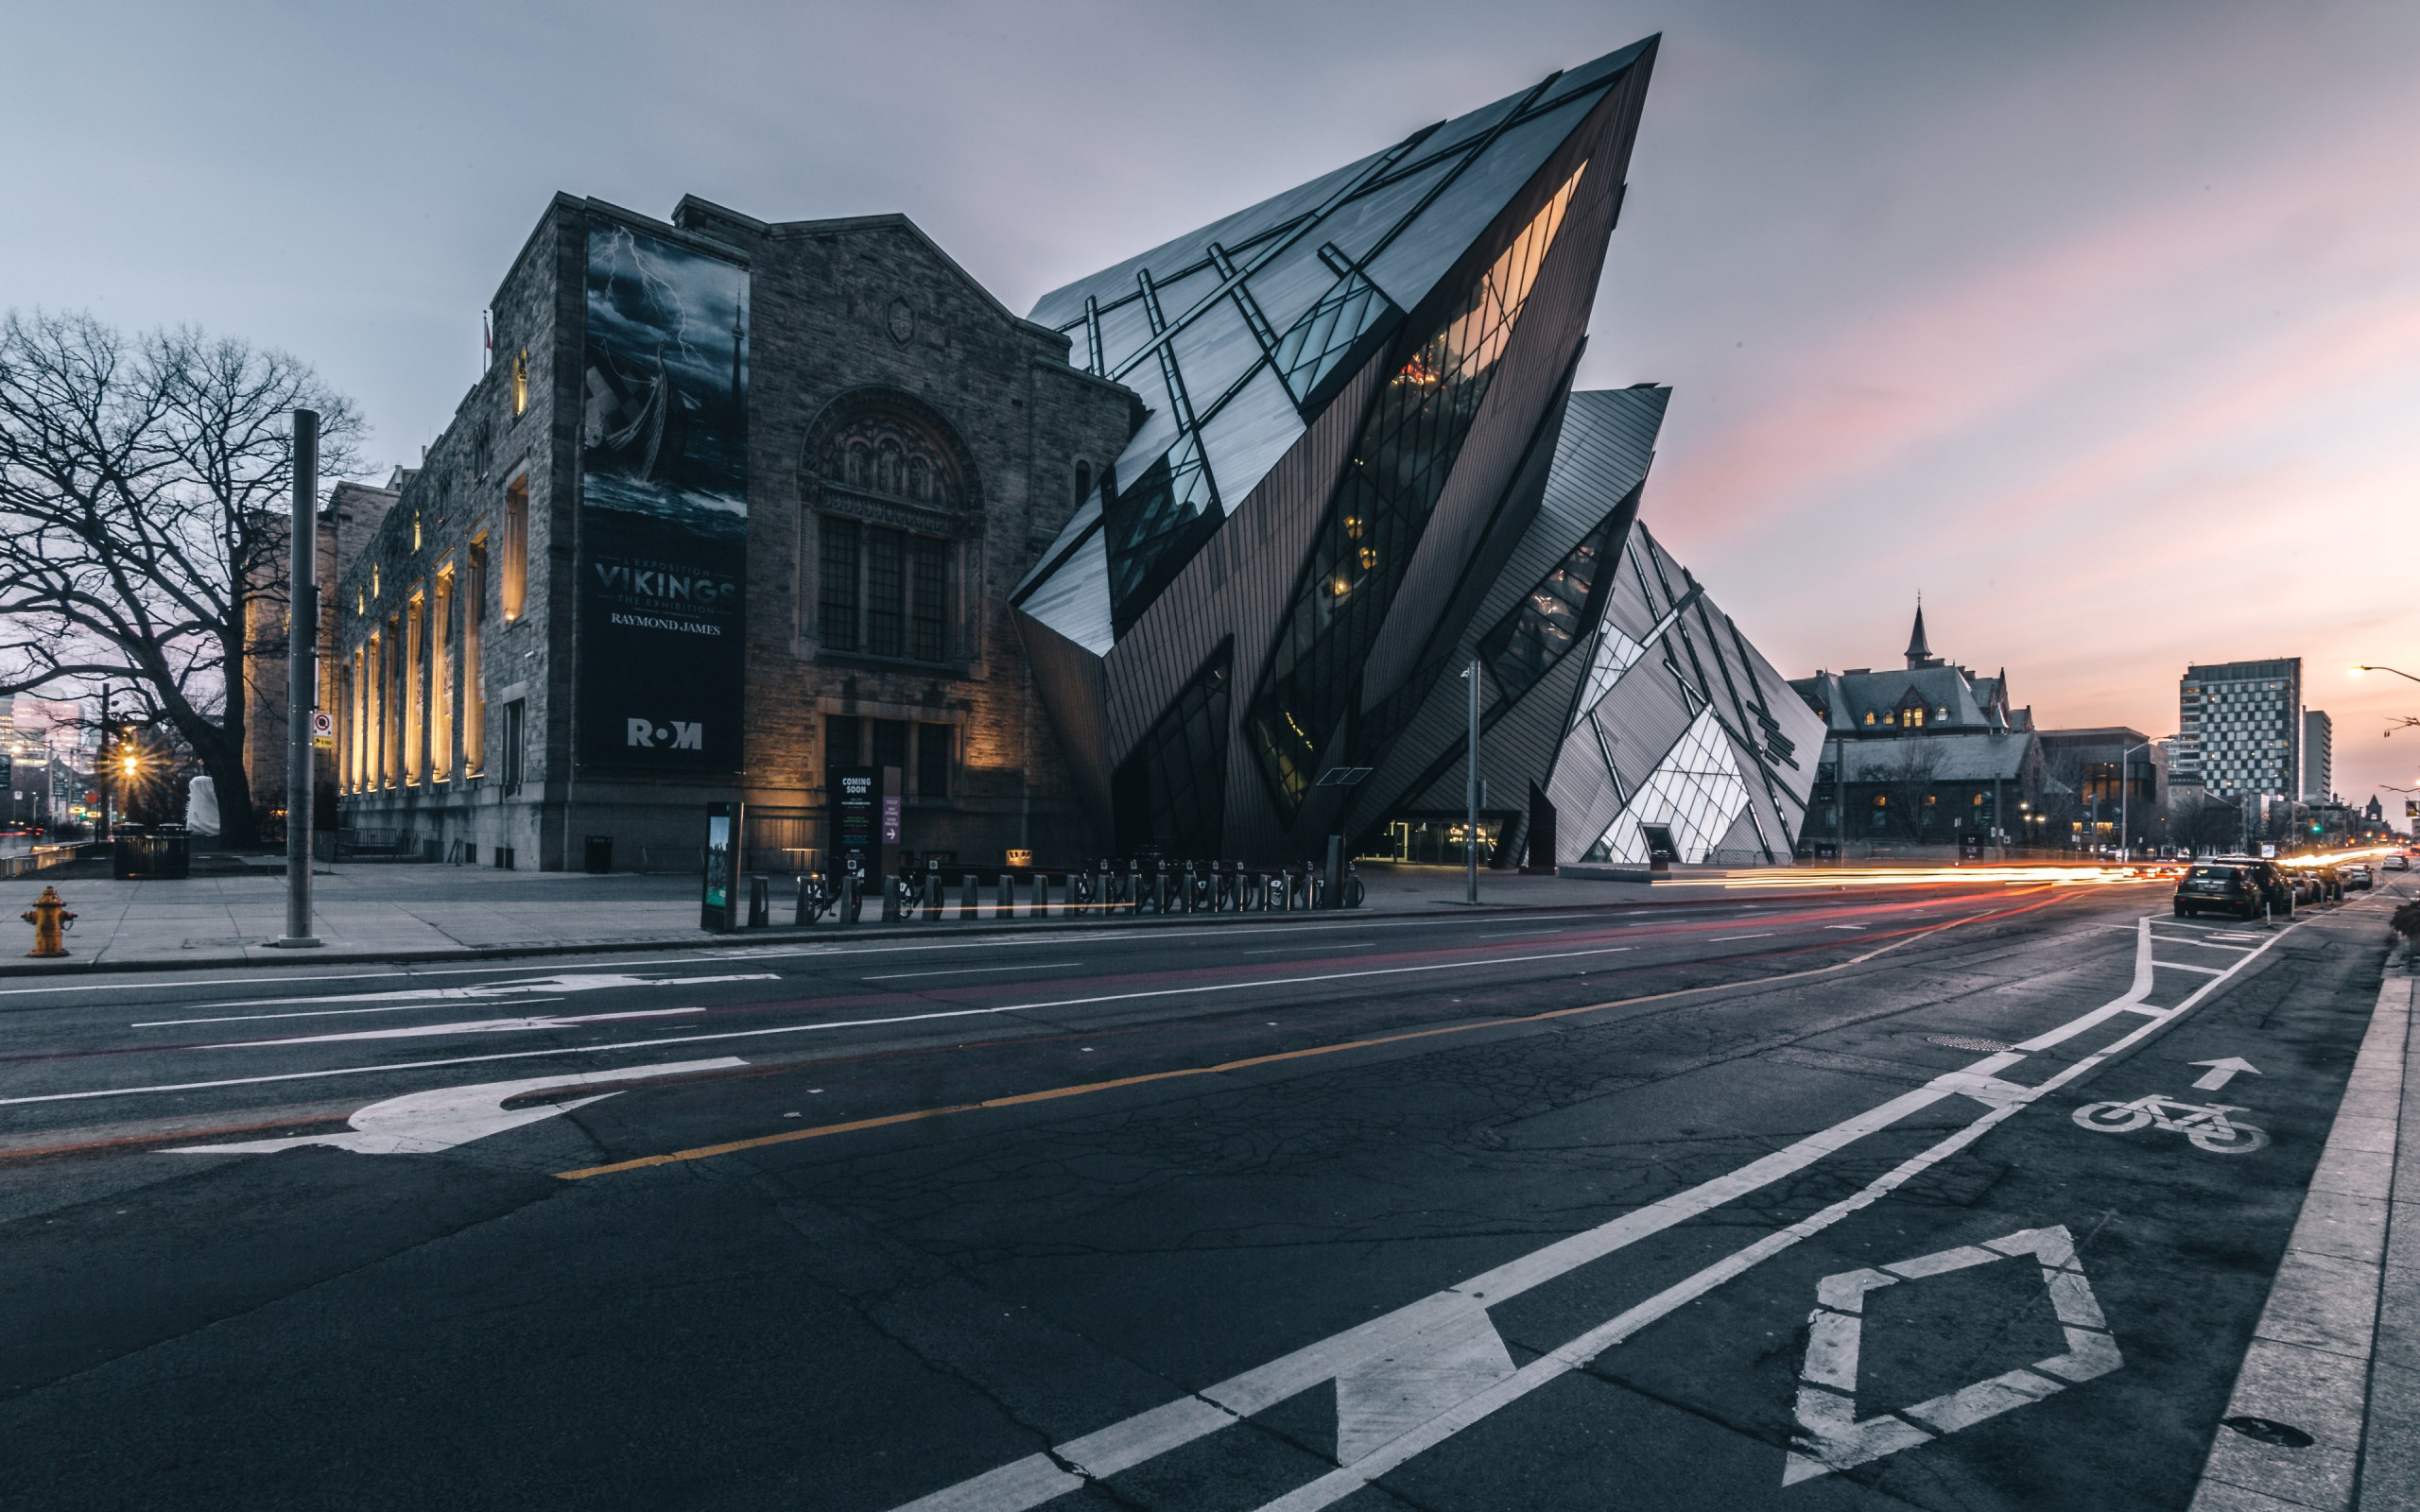 Royal Ontario Museum at sunset wallpaper 2560x1600